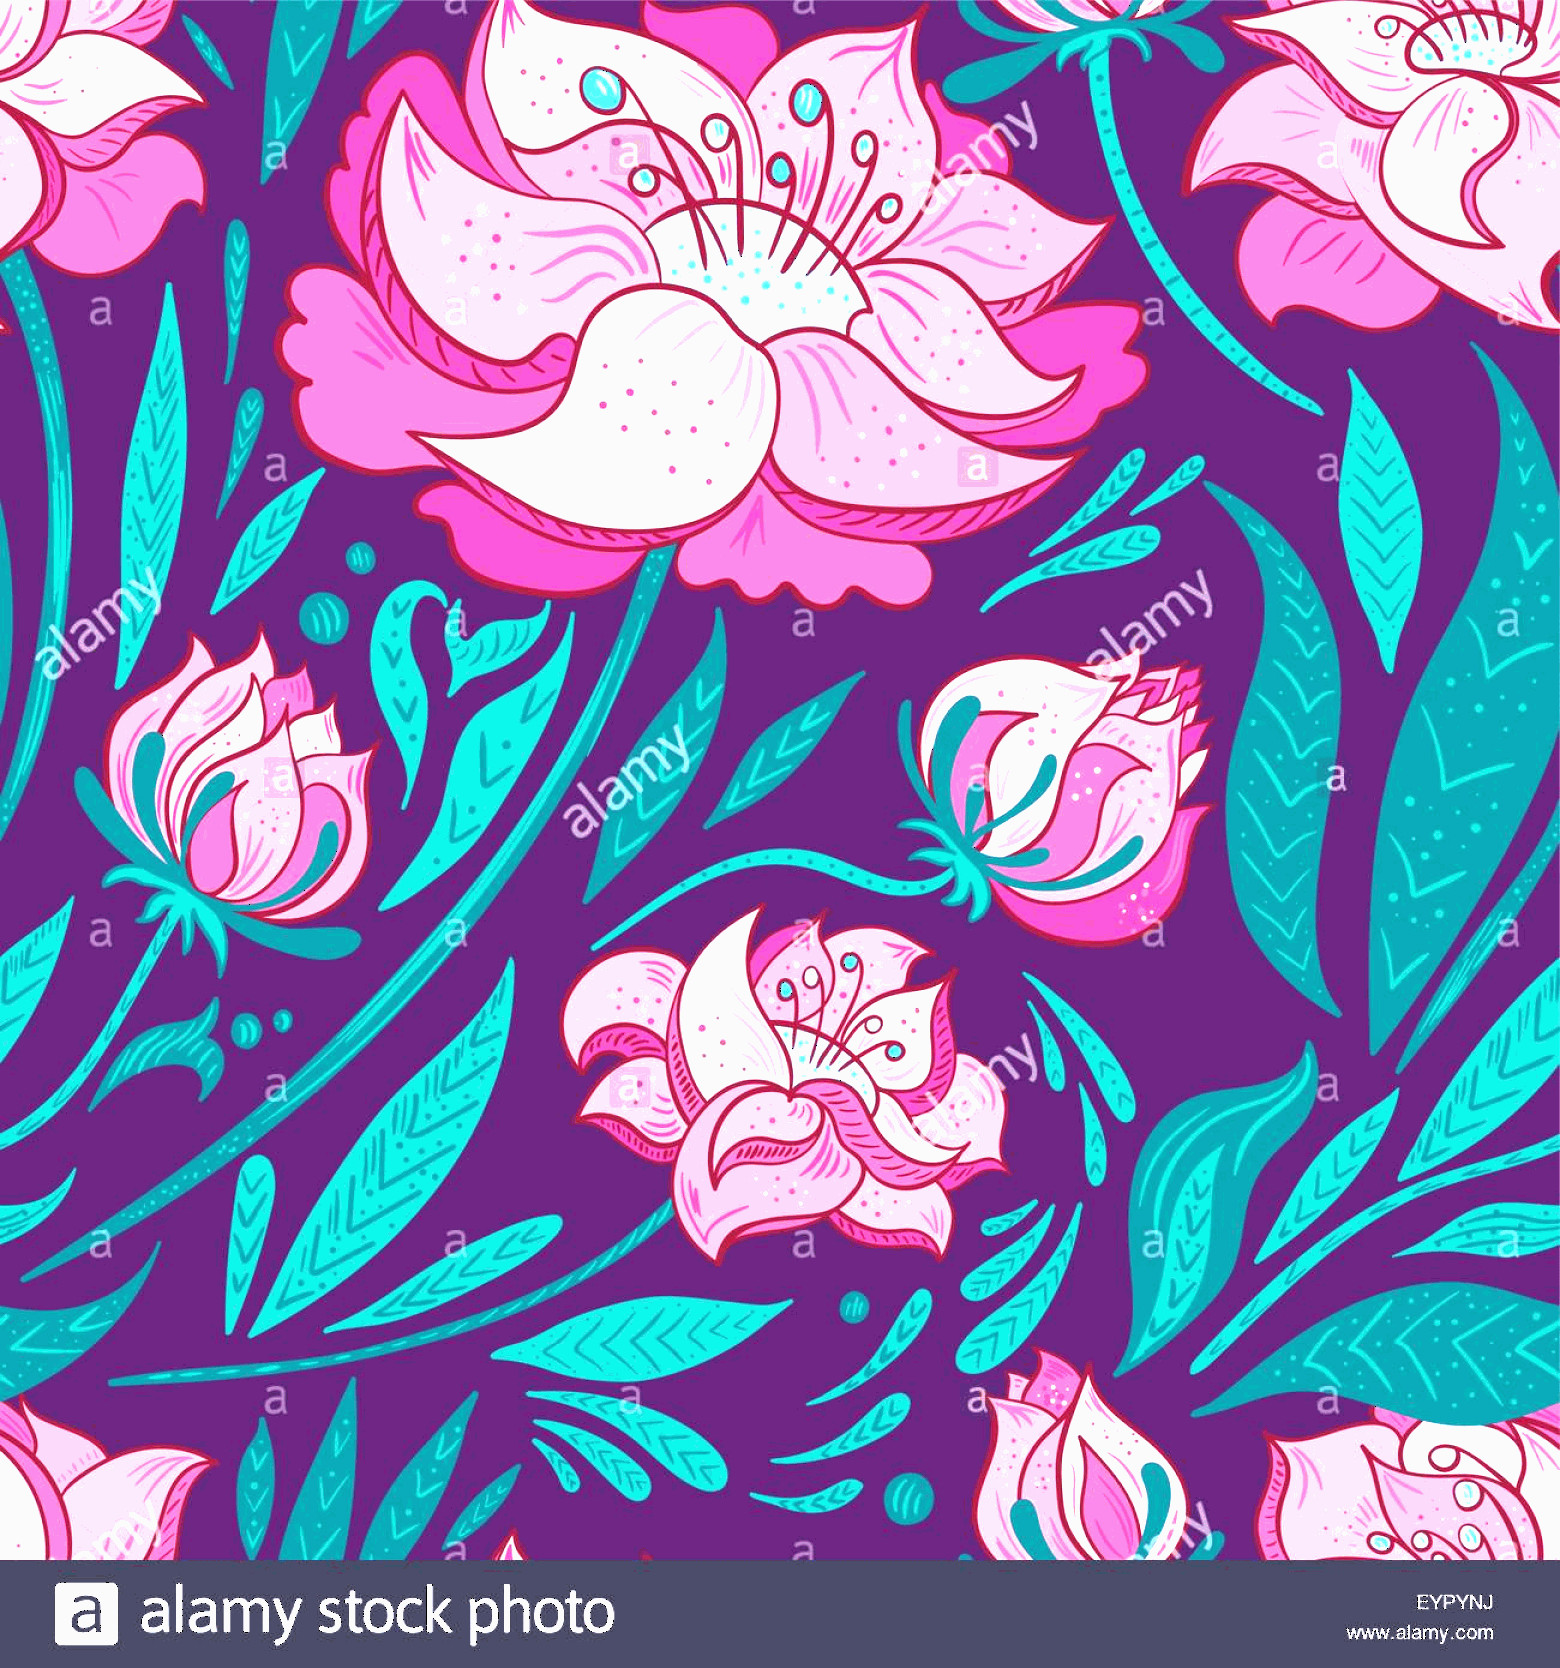 Contemporary Wallpaper Art Vector: Stock Photo Elegant Seamless Pattern With Flat Design Florals For Contemporary